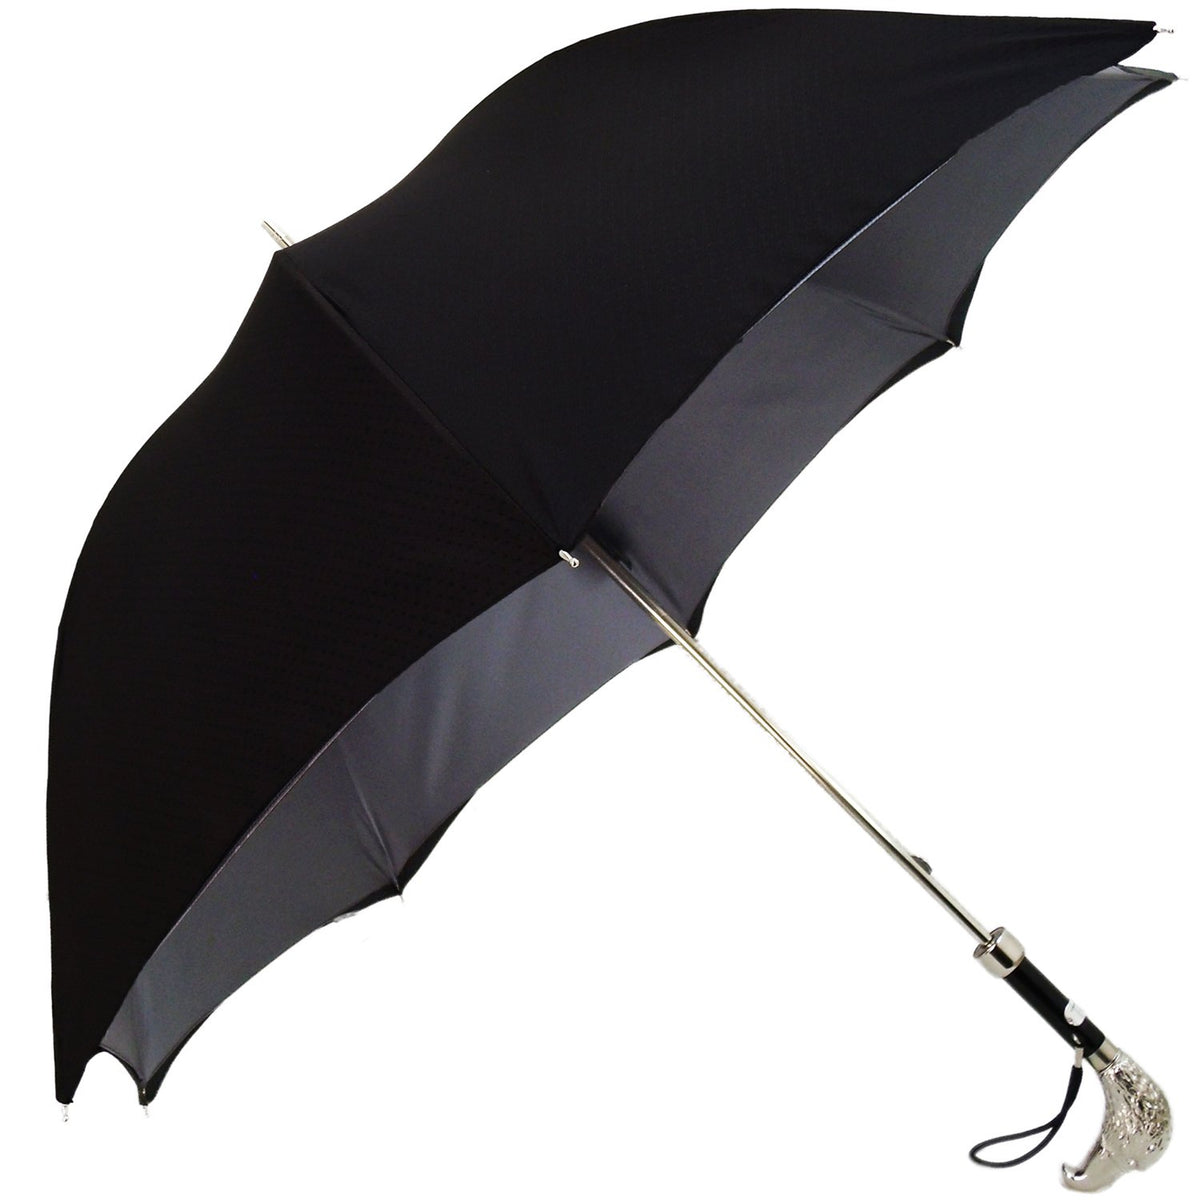 LUXURY BLACK EAGLE UMBRELLA